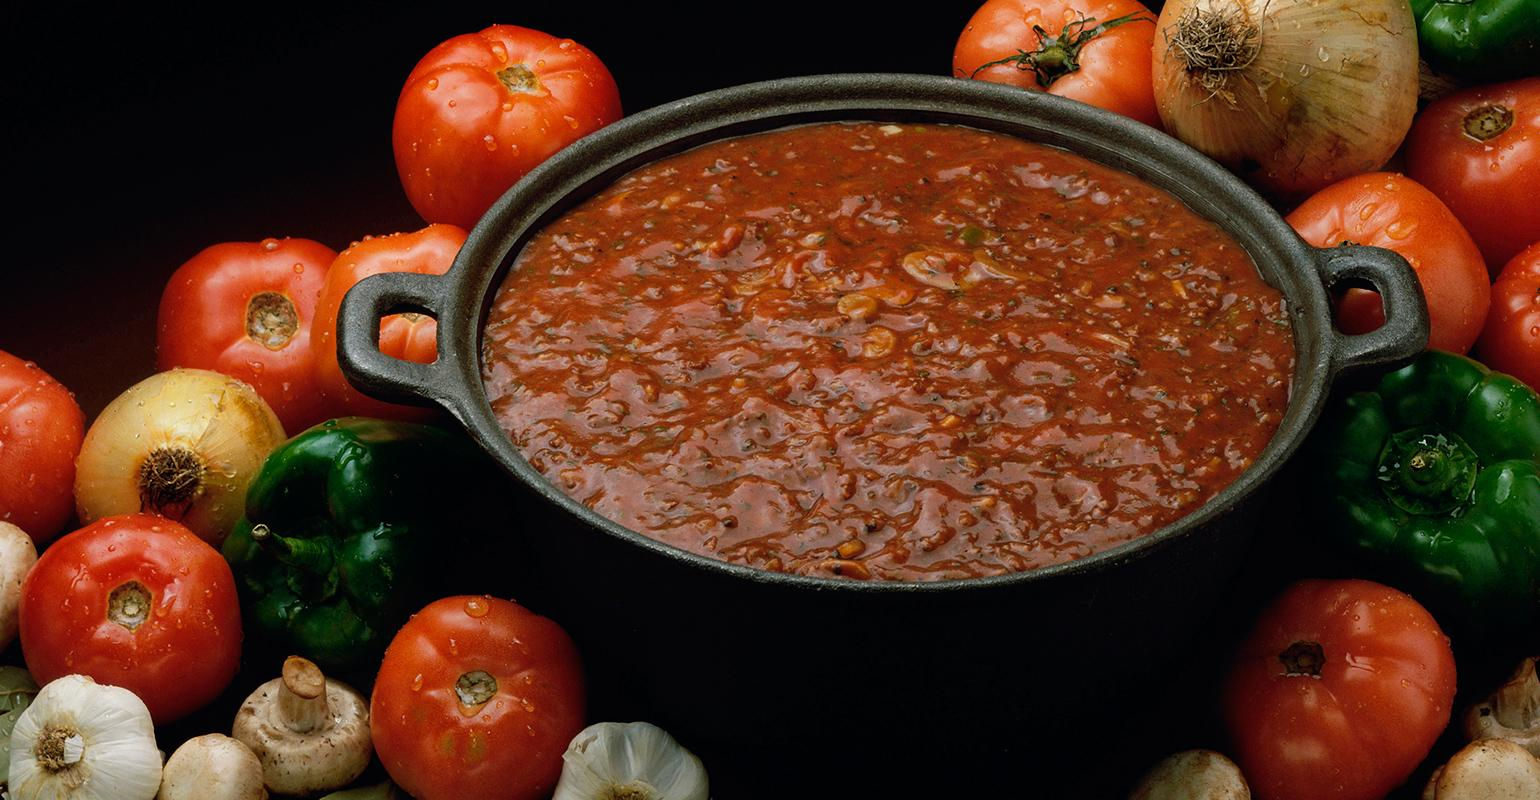 Build a Better: Chili | Food Management